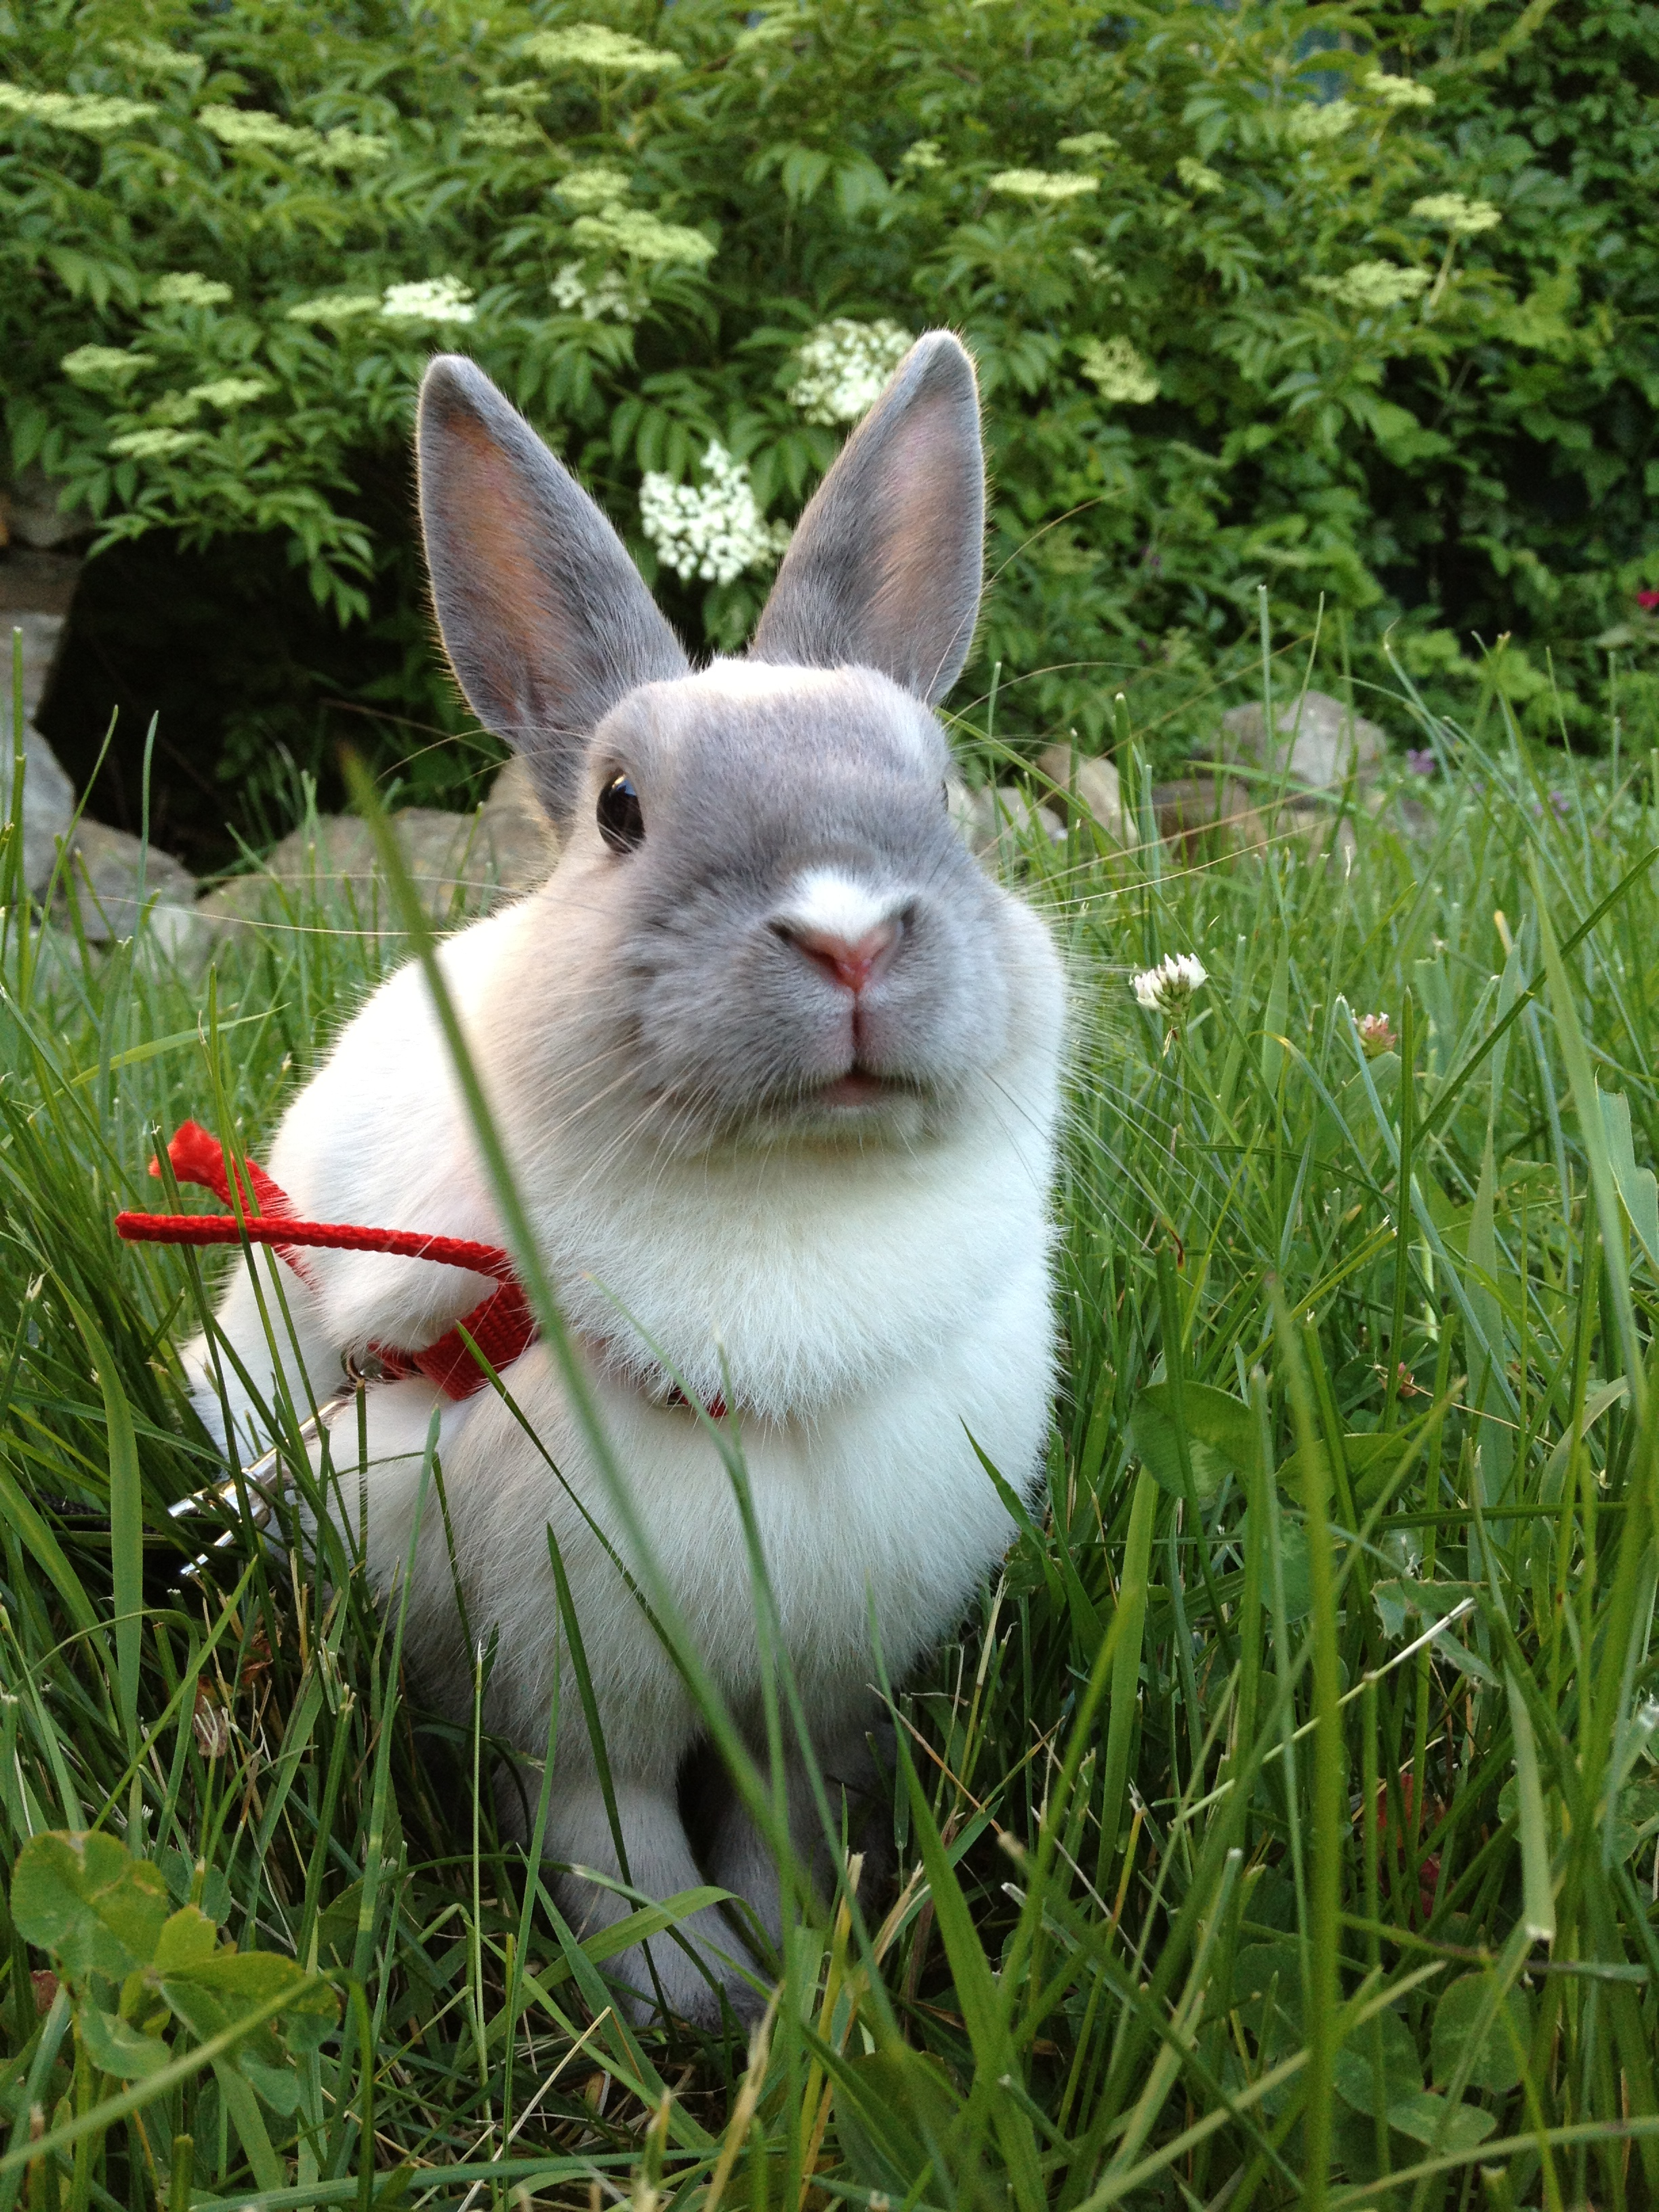 Photos Illustrating Two Sides of Bunny: One in Which He Sits Sweetly, Another in Which Grass Sticks Out of His Mouth While Eating 2